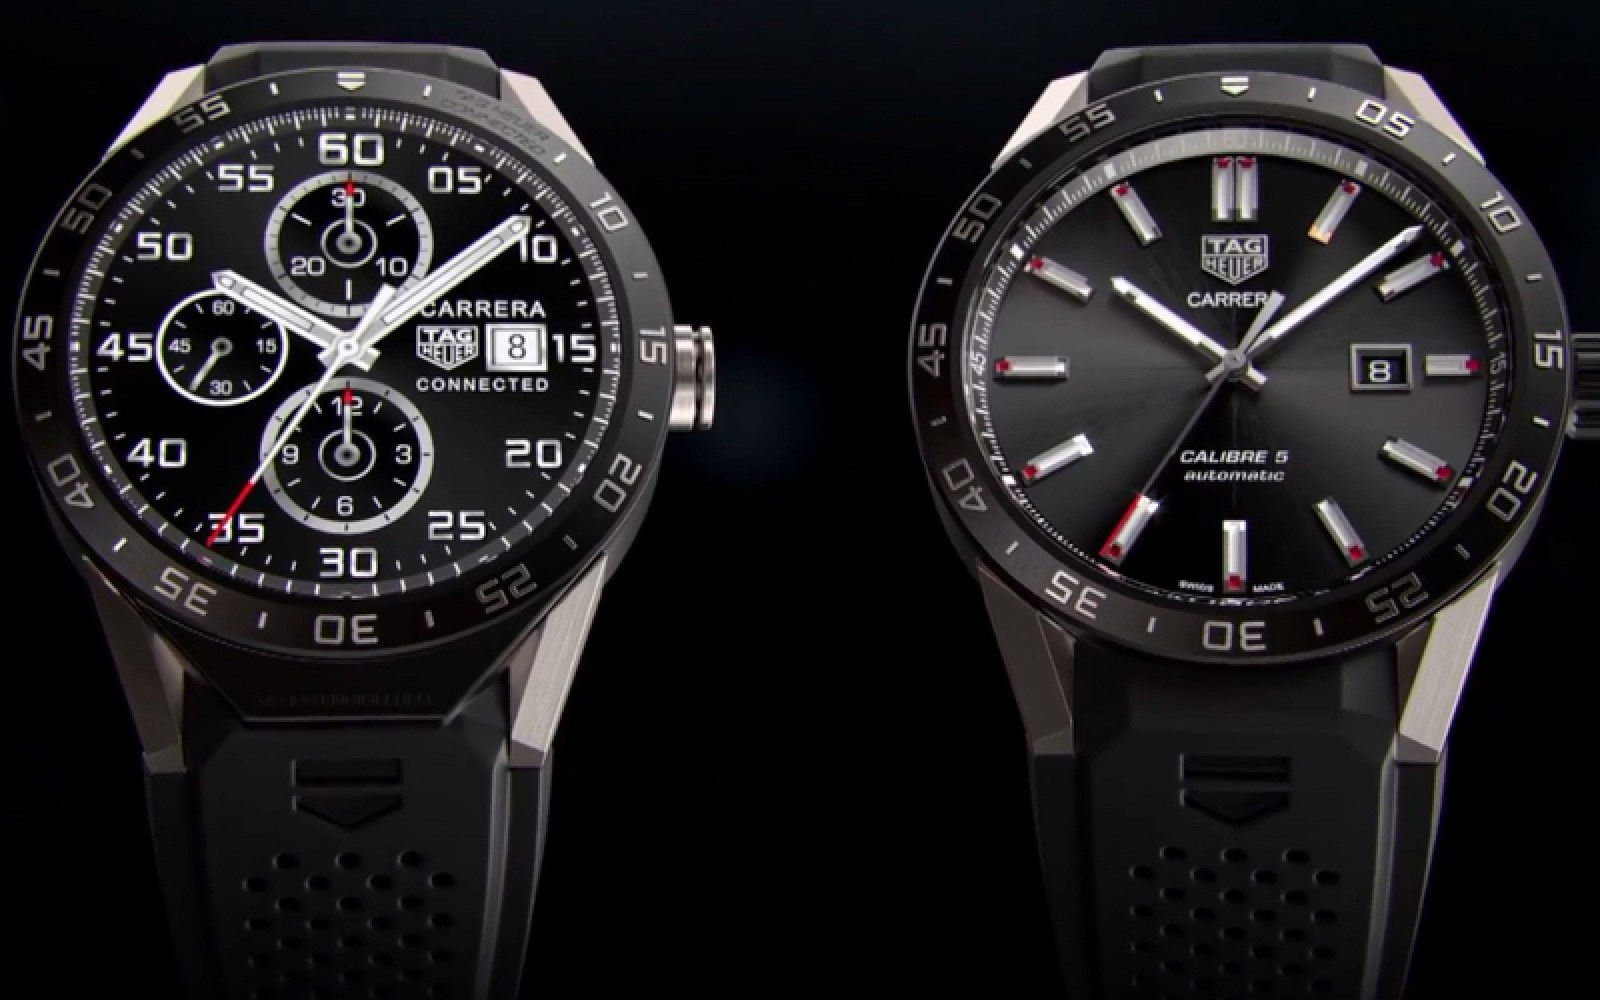 TAG Heuer teases its next Android Wear device ahead of March 14th unveiling